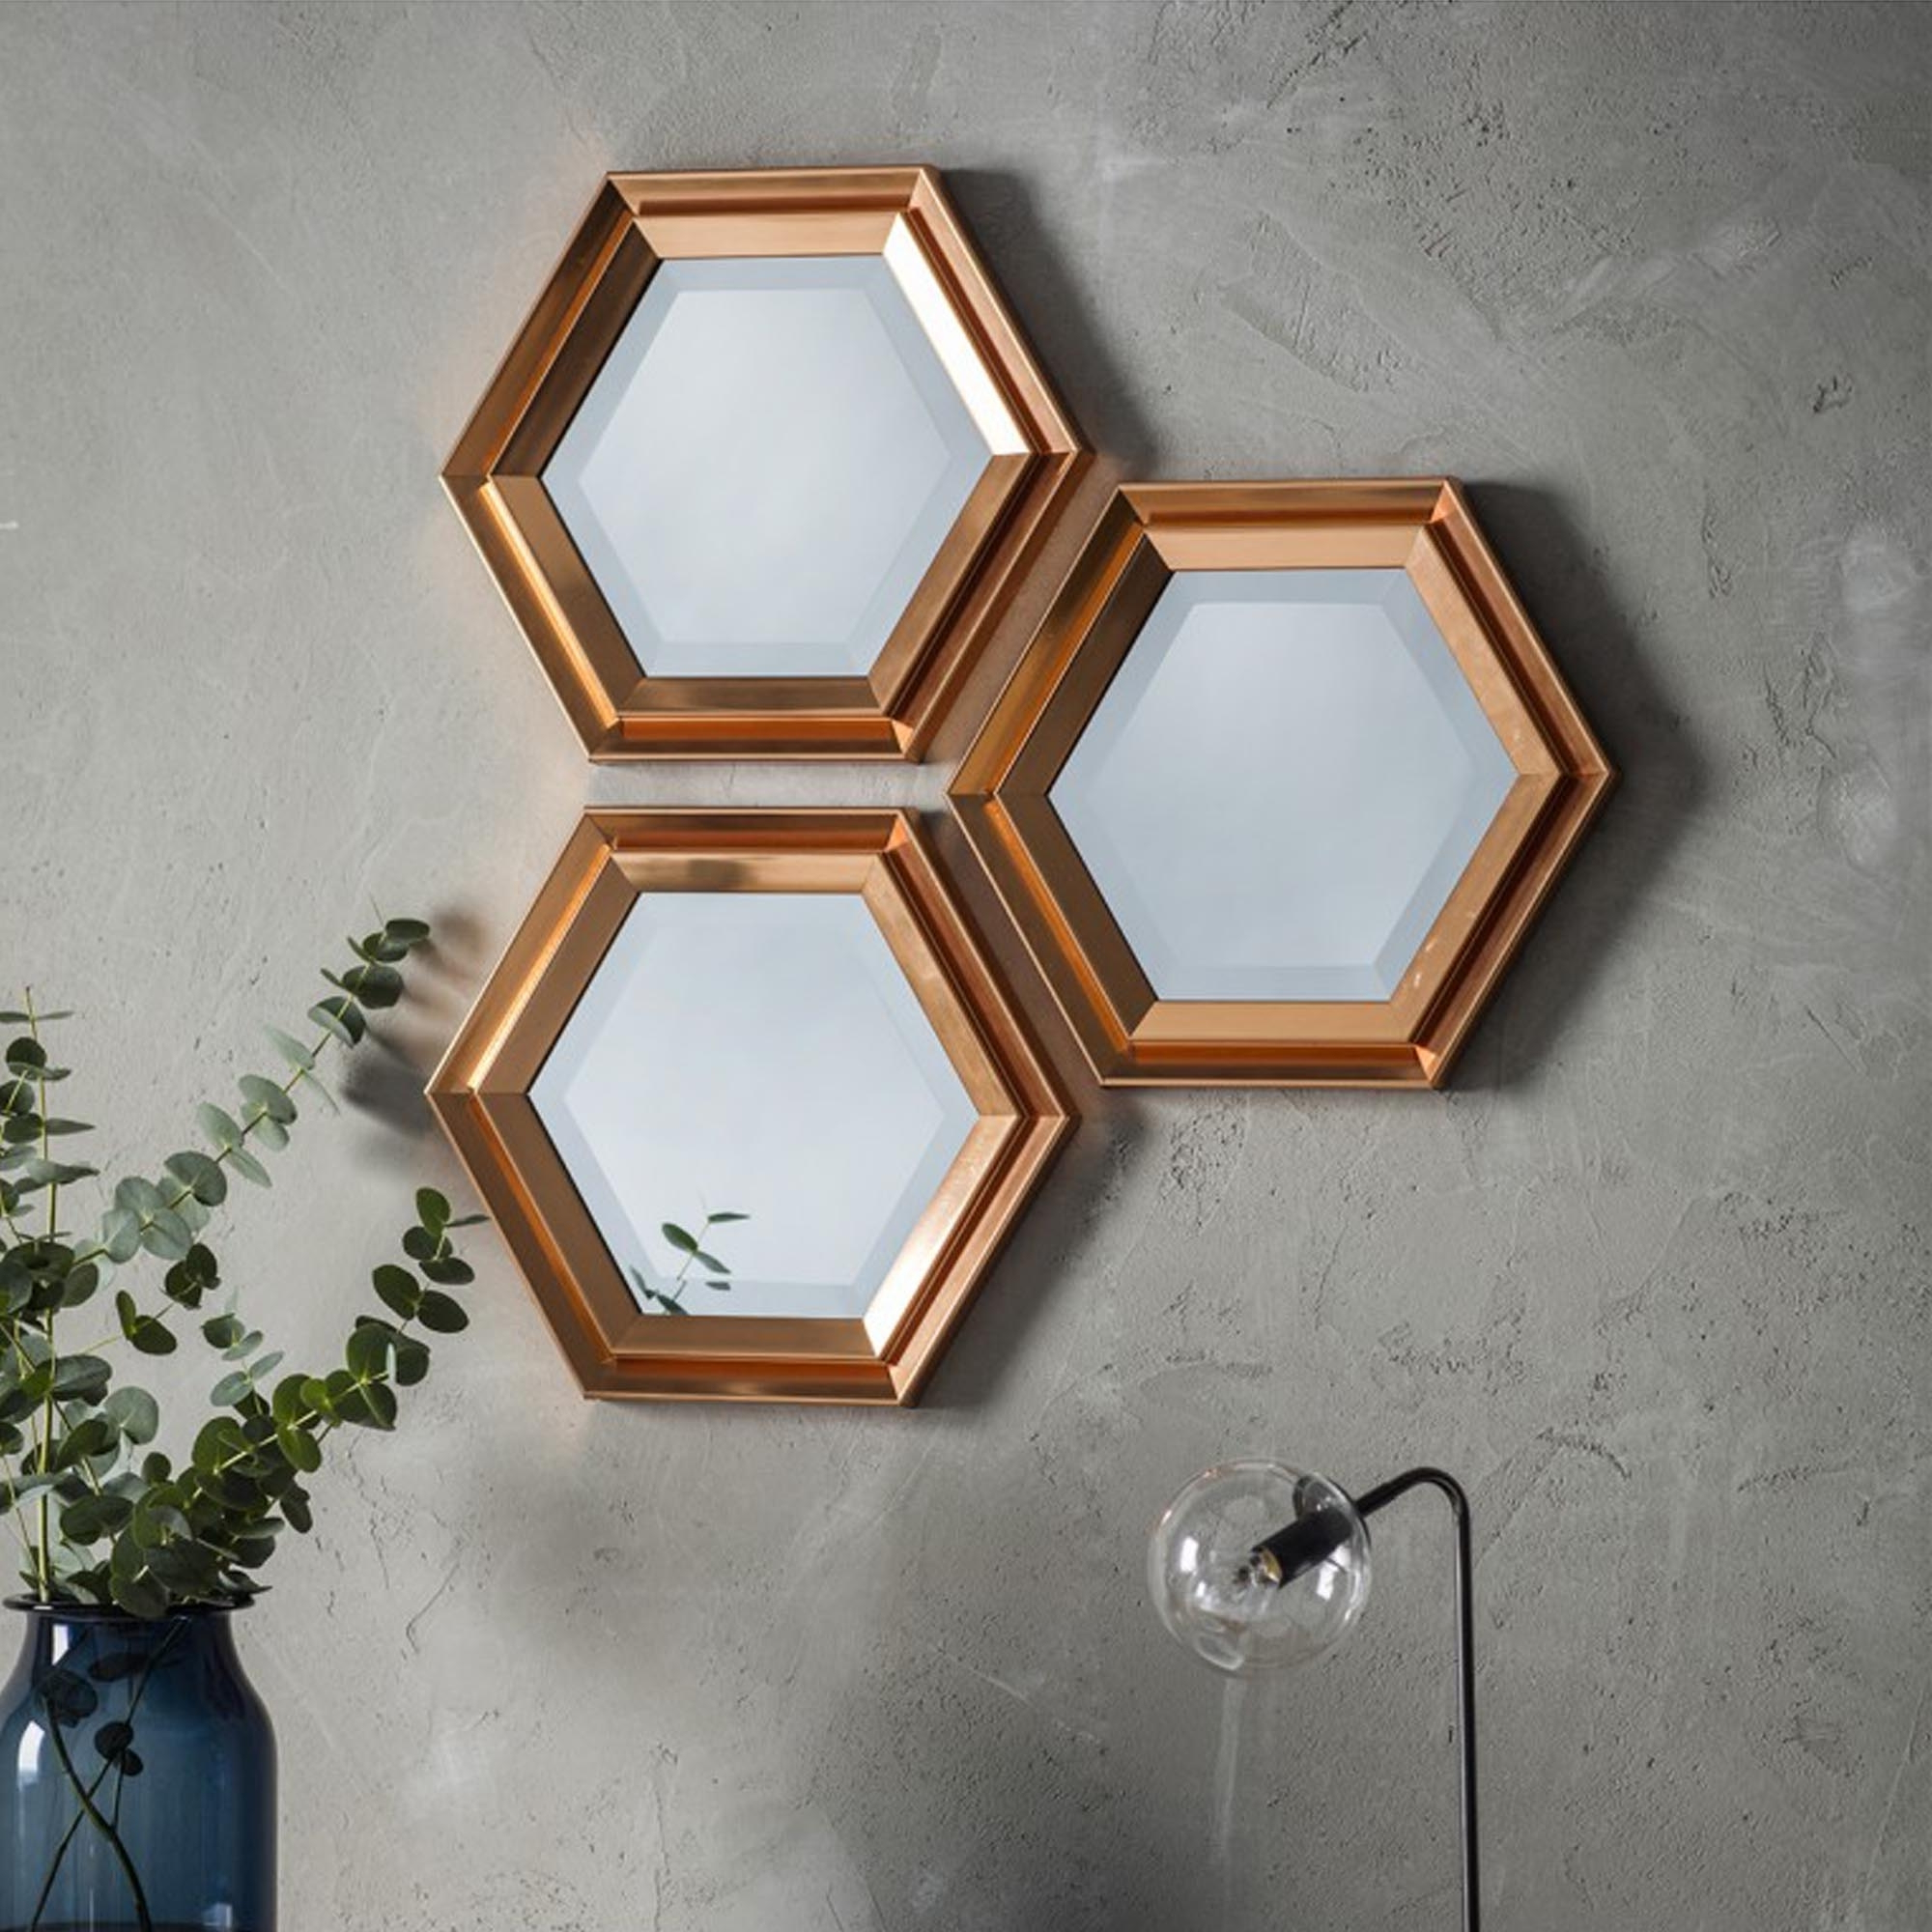 Most Recently Released Set Of Wall Mirrors Throughout Fawkner Set Of 3 Wall Mirrors (View 8 of 20)